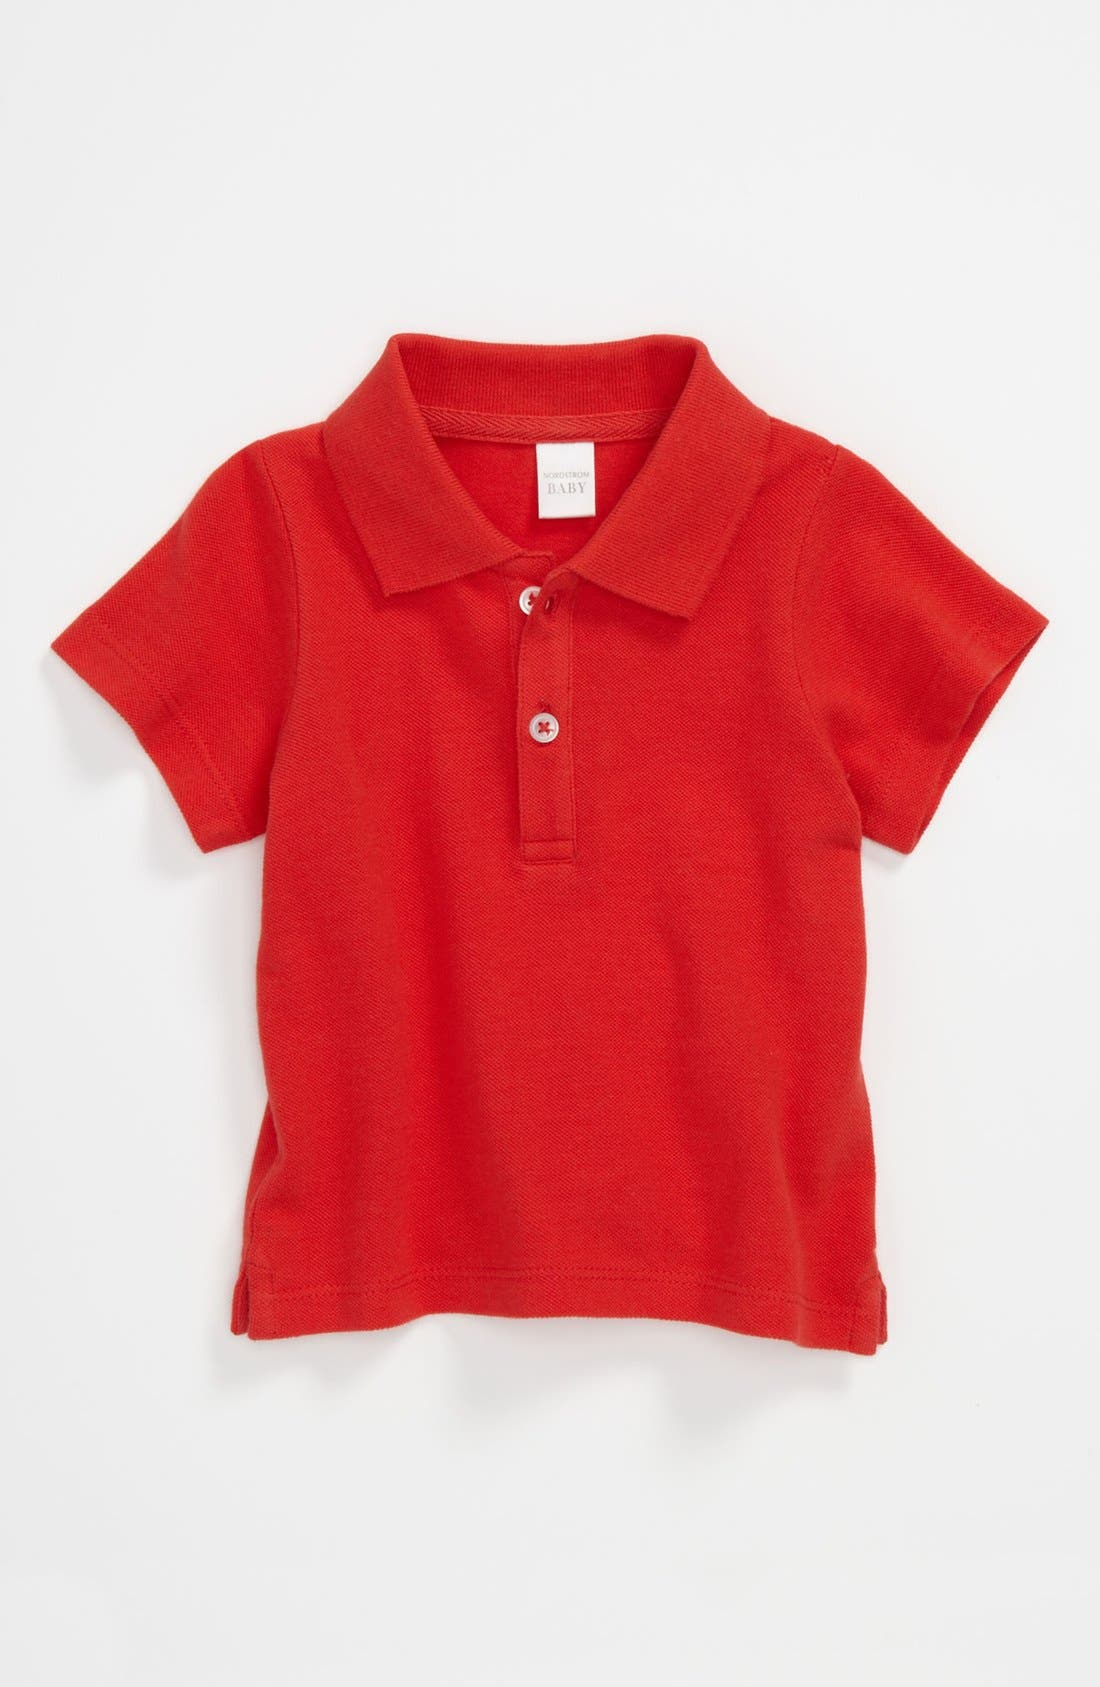 Alternate Image 1 Selected - Nordstrom Baby Polo Shirt (Baby)